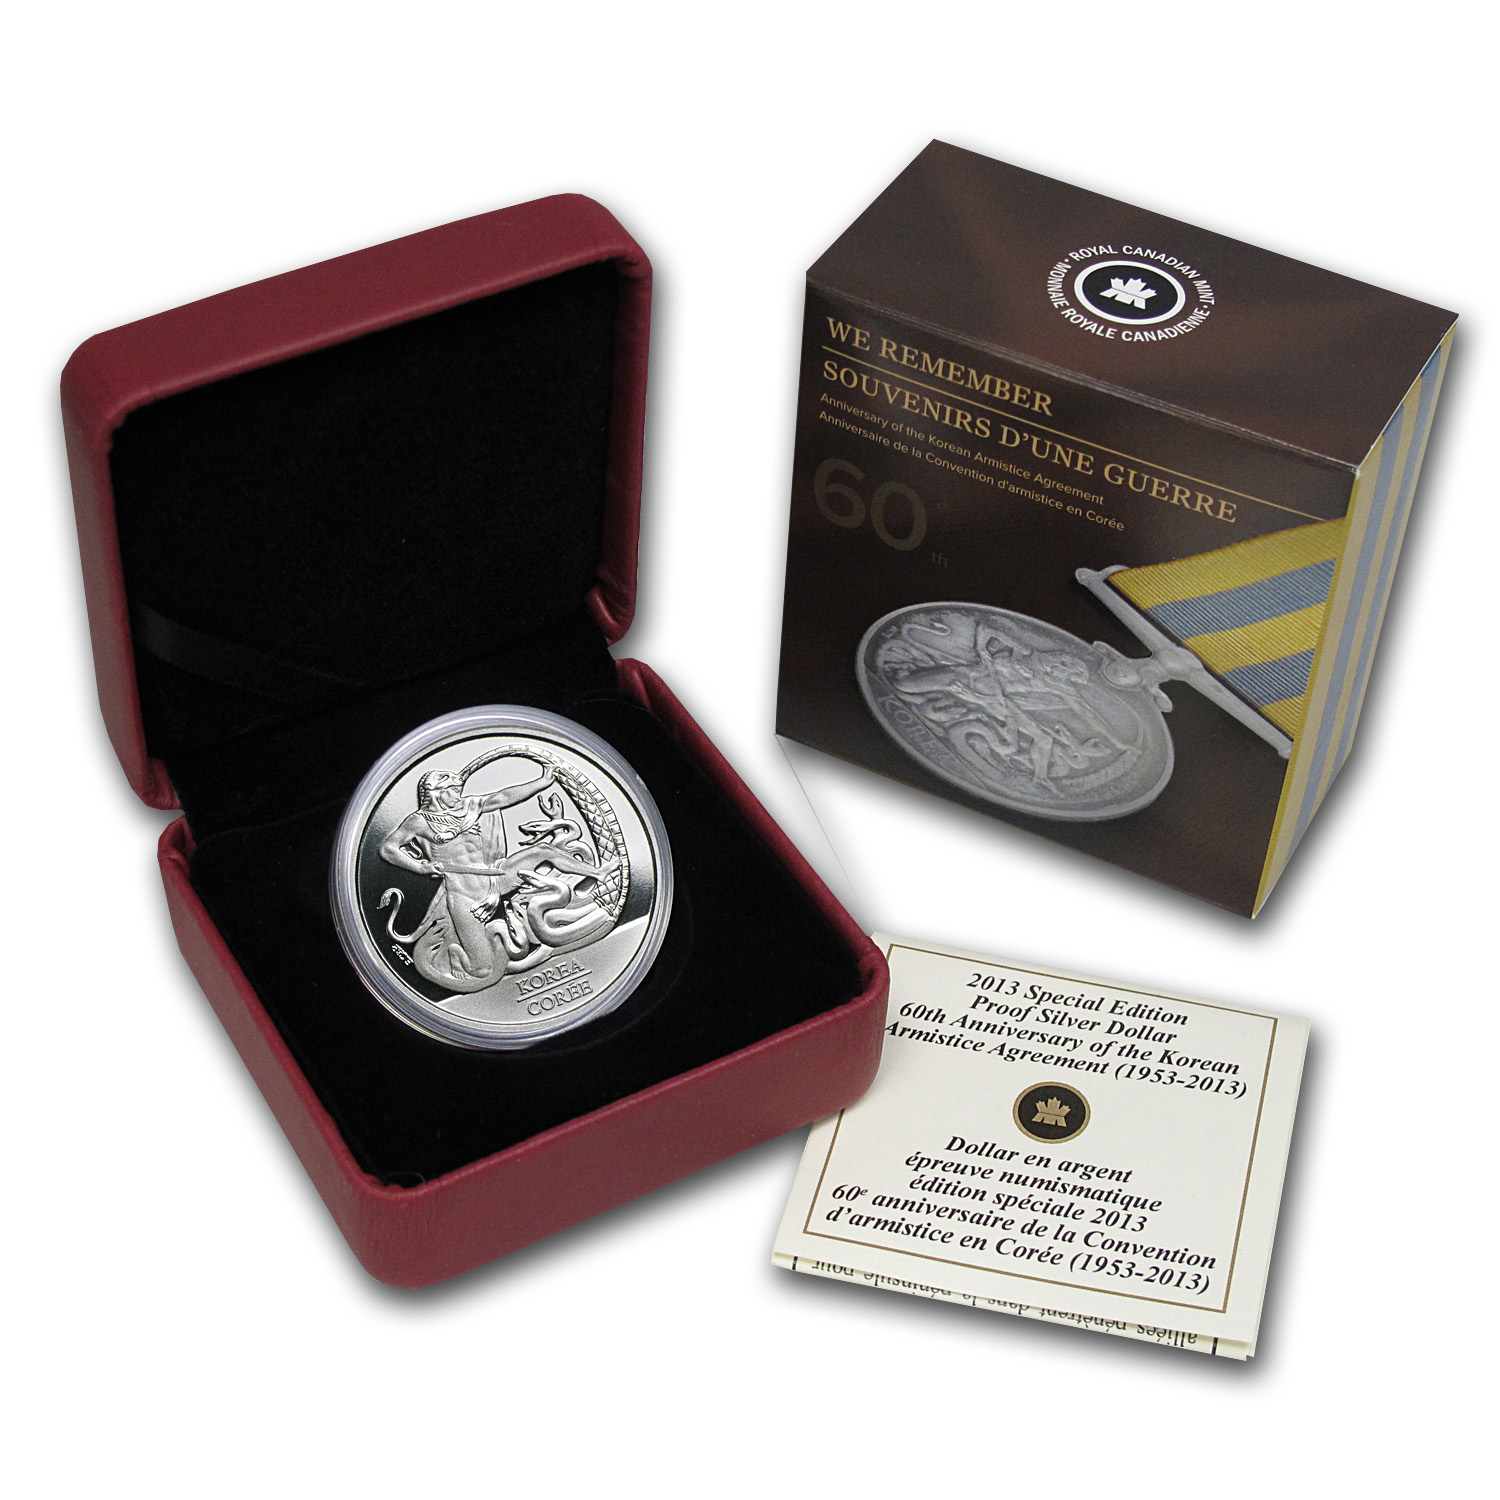 2013 Silver Canadian The 60th Anniv. - Korean Armistice Agreement